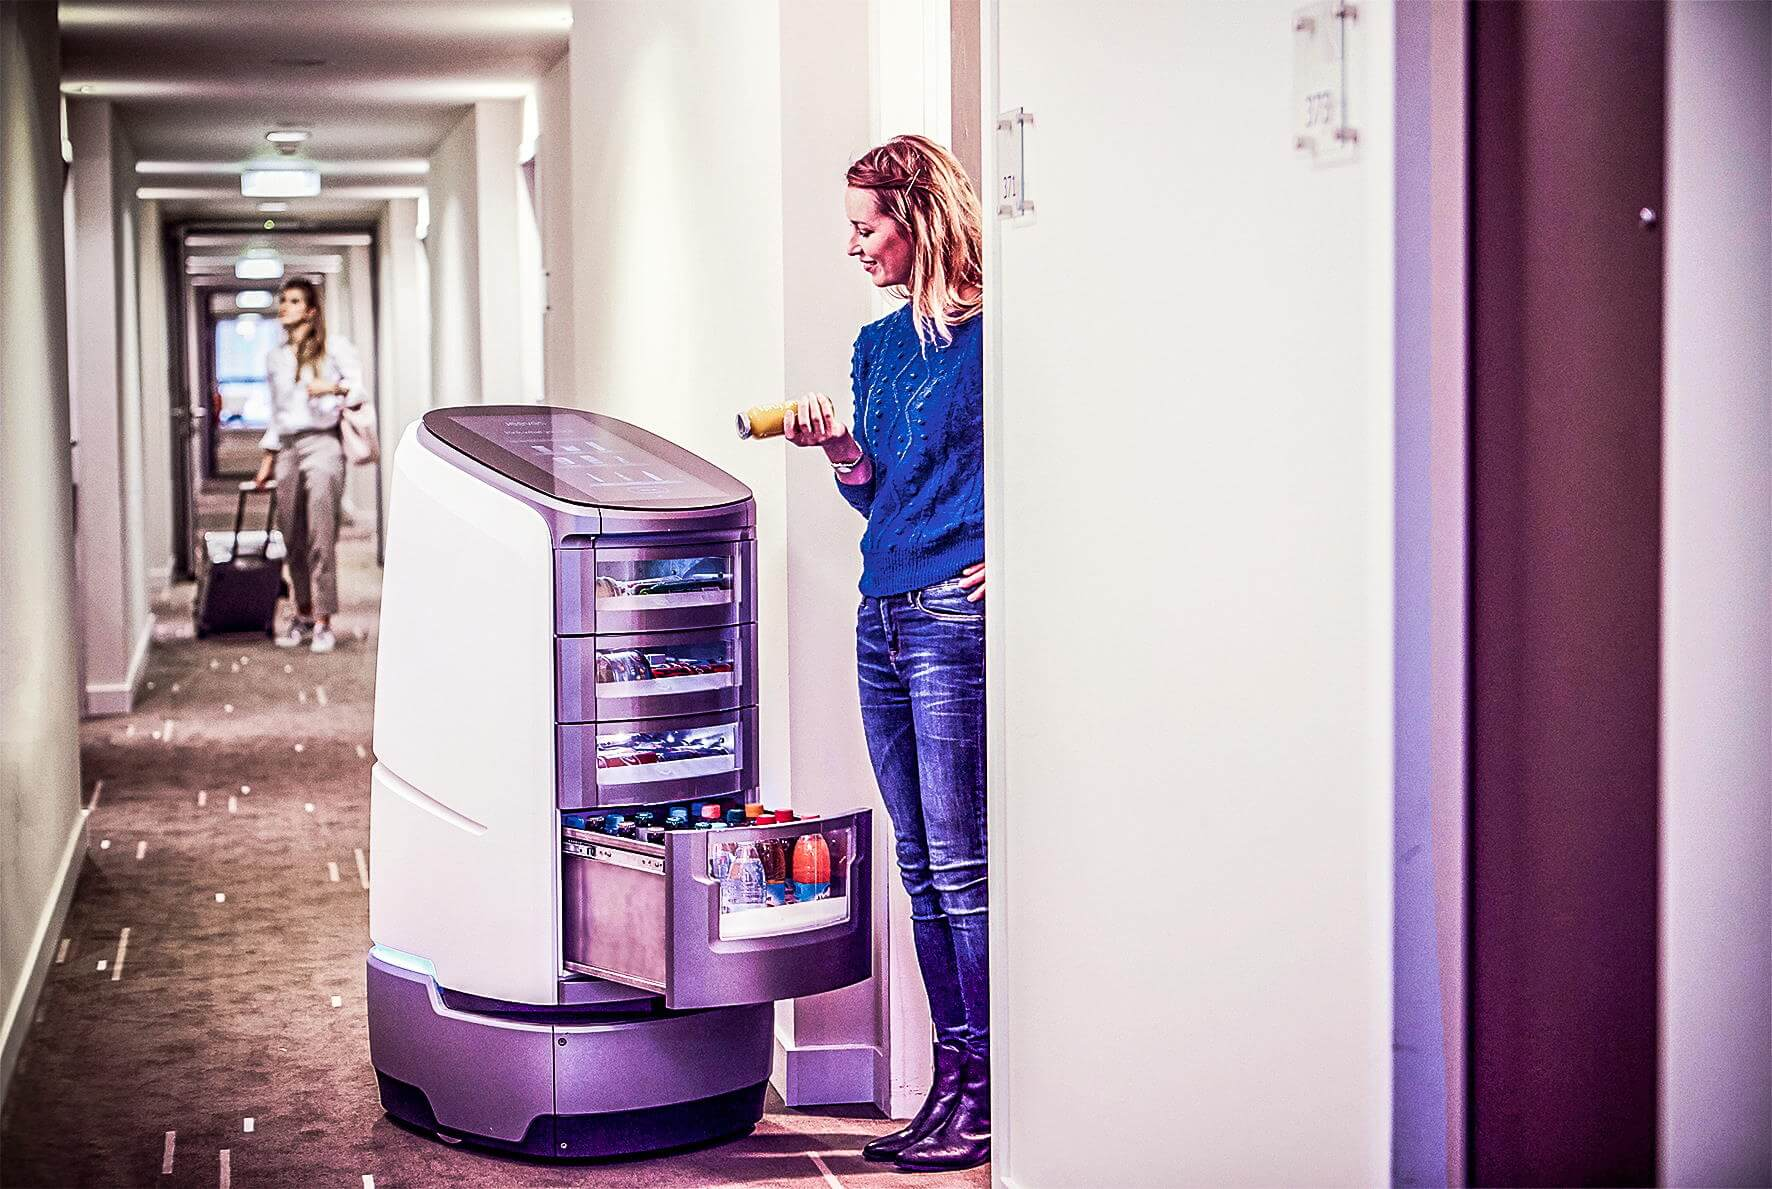 Roboter and Digitalisation in Hotels